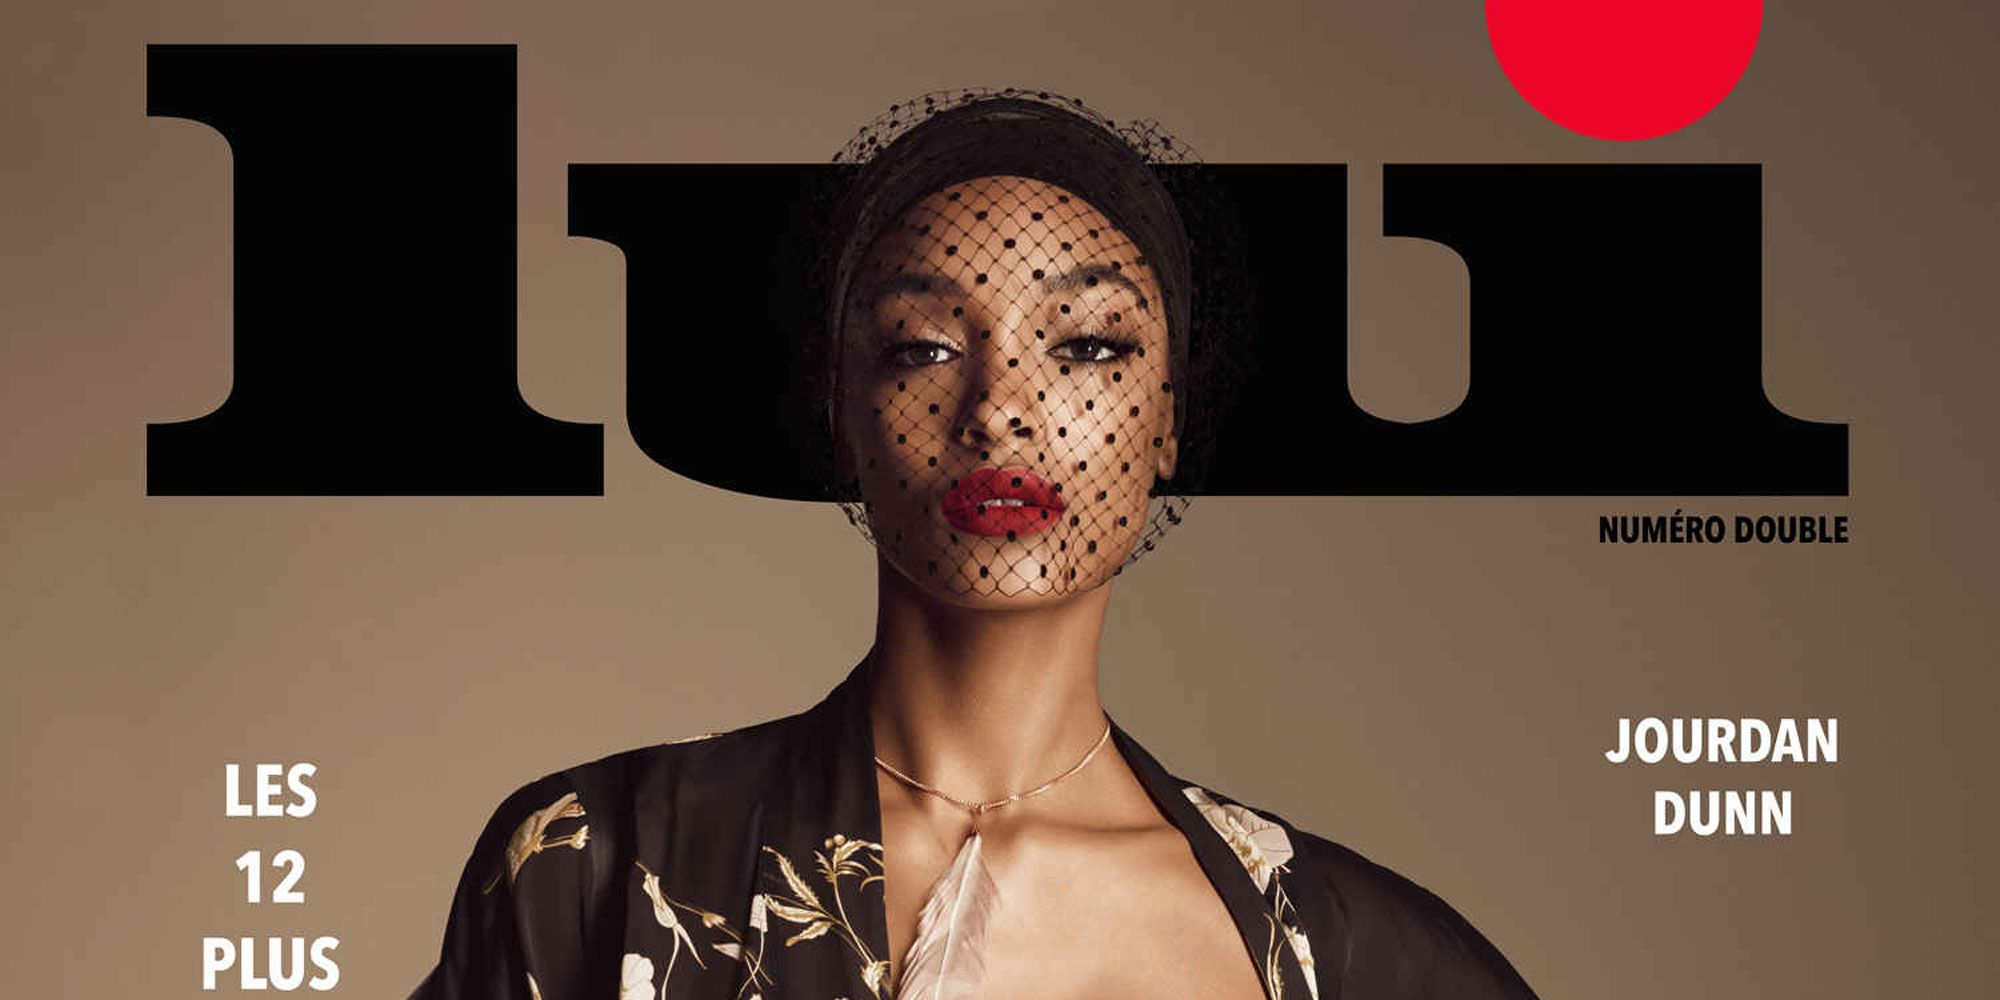 Jourdan Dunn Nude Photos and Videos new foto